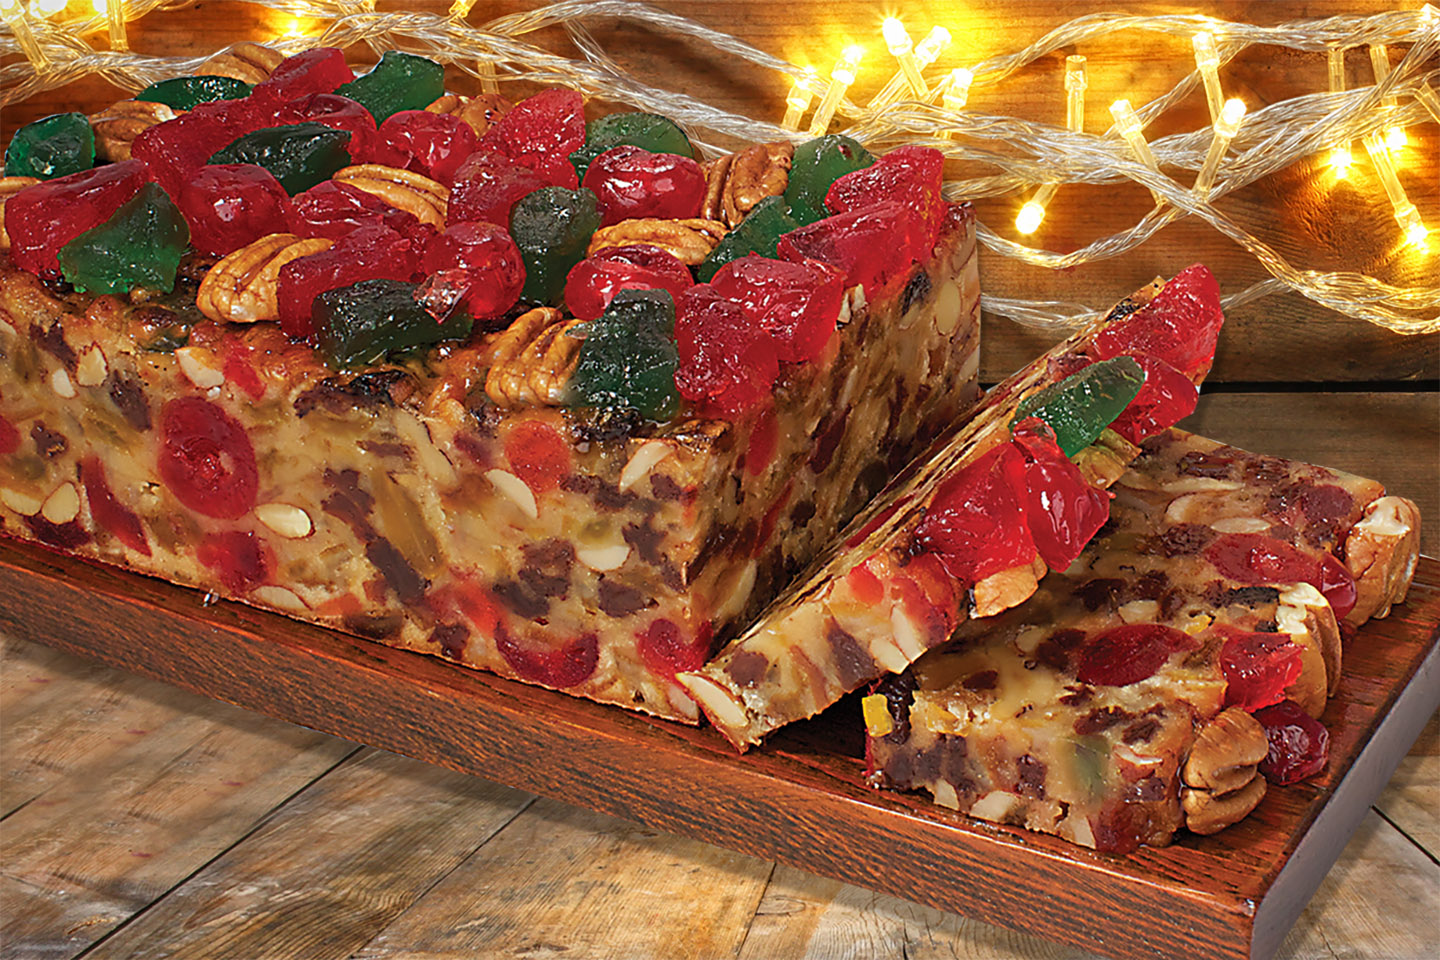 Costco Fruit Cake